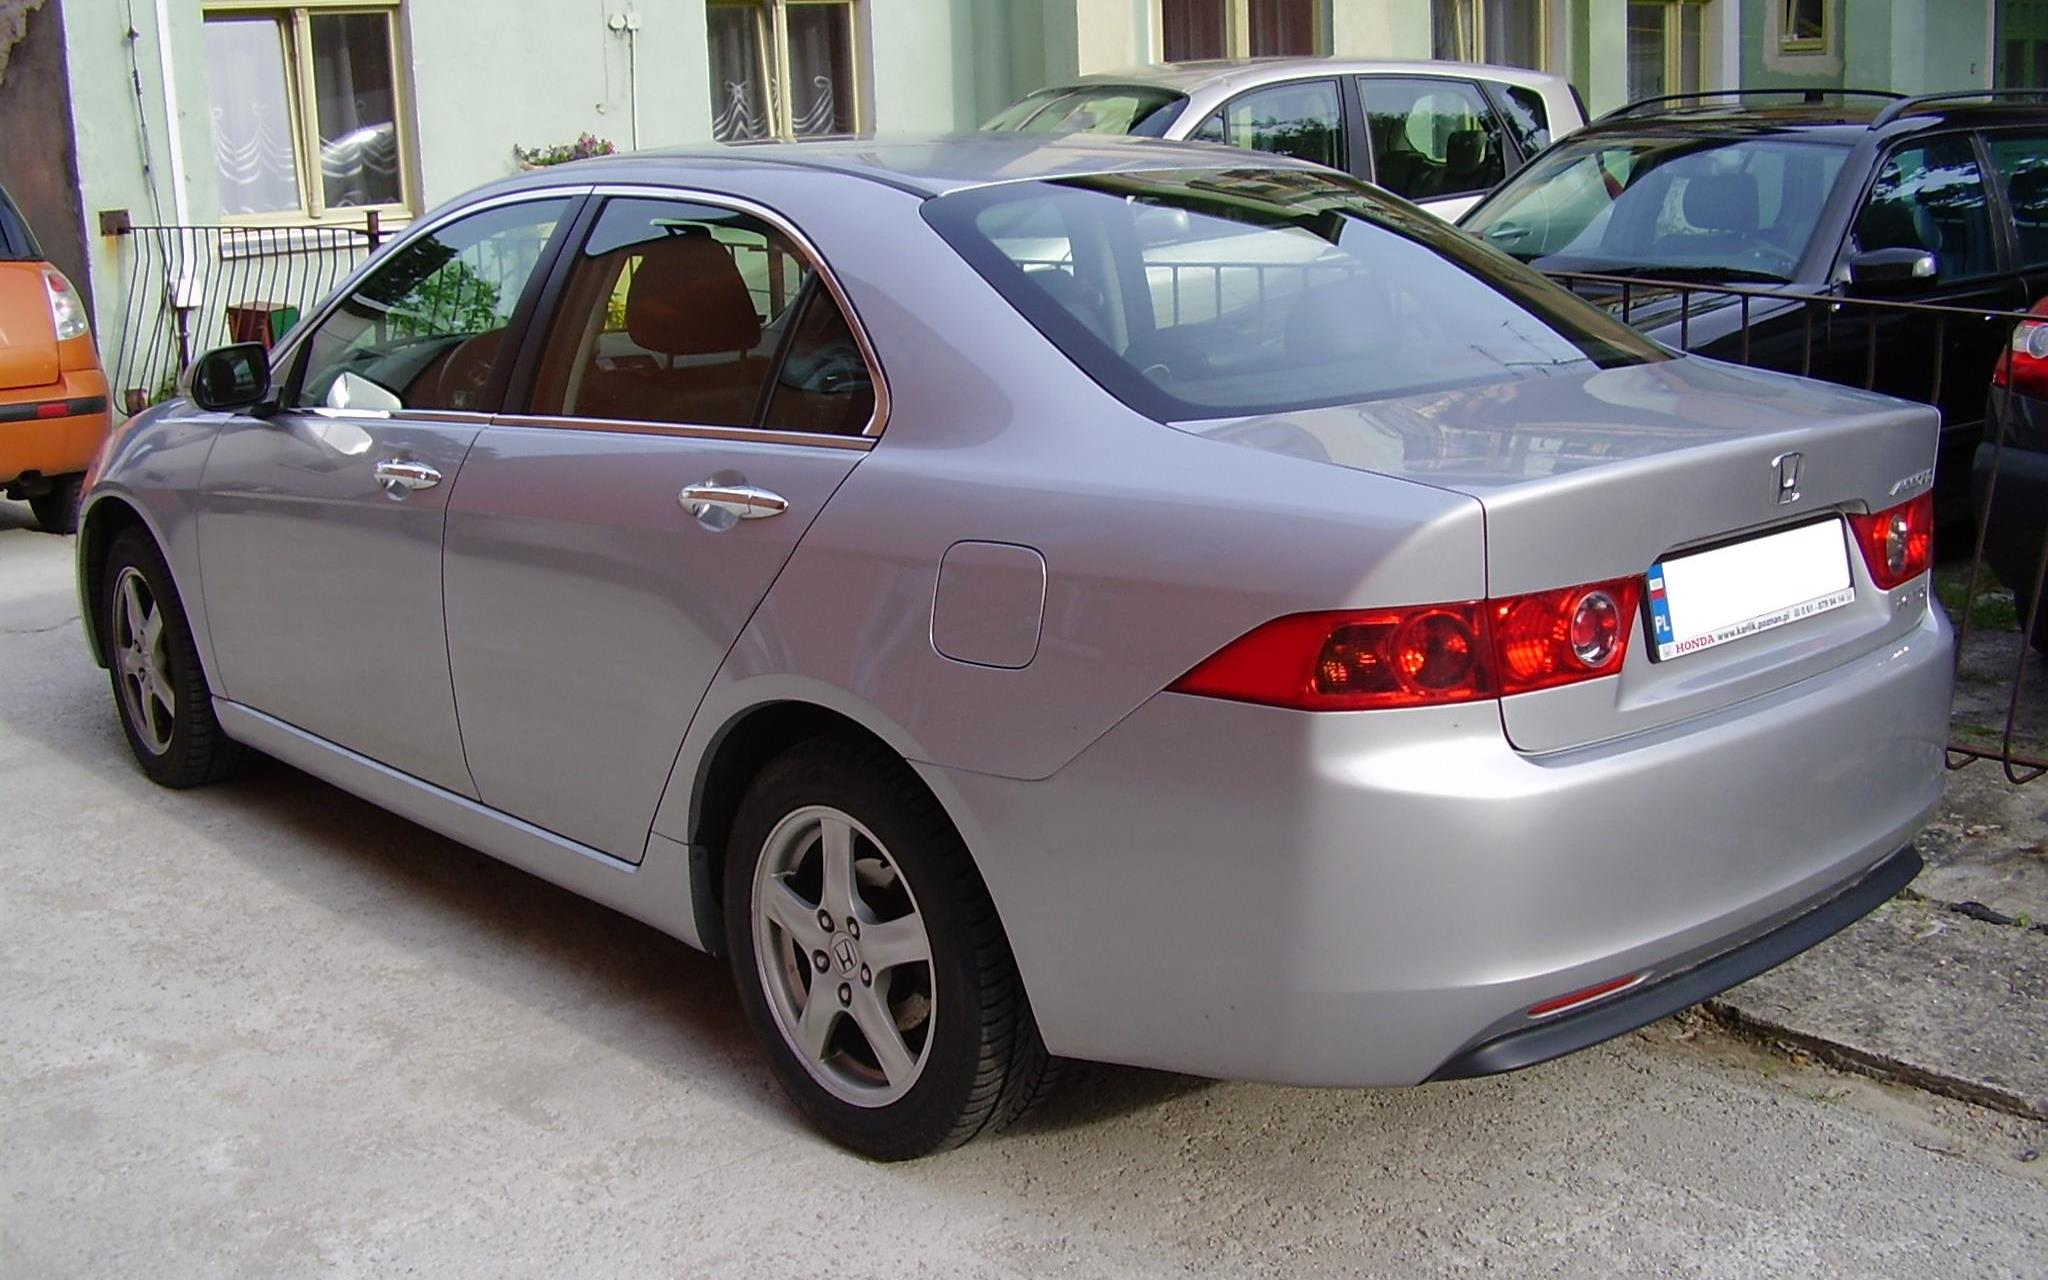 Honda Accord Lx >> File:Honda Accord Międzyzdroje2.JPG - Wikimedia Commons